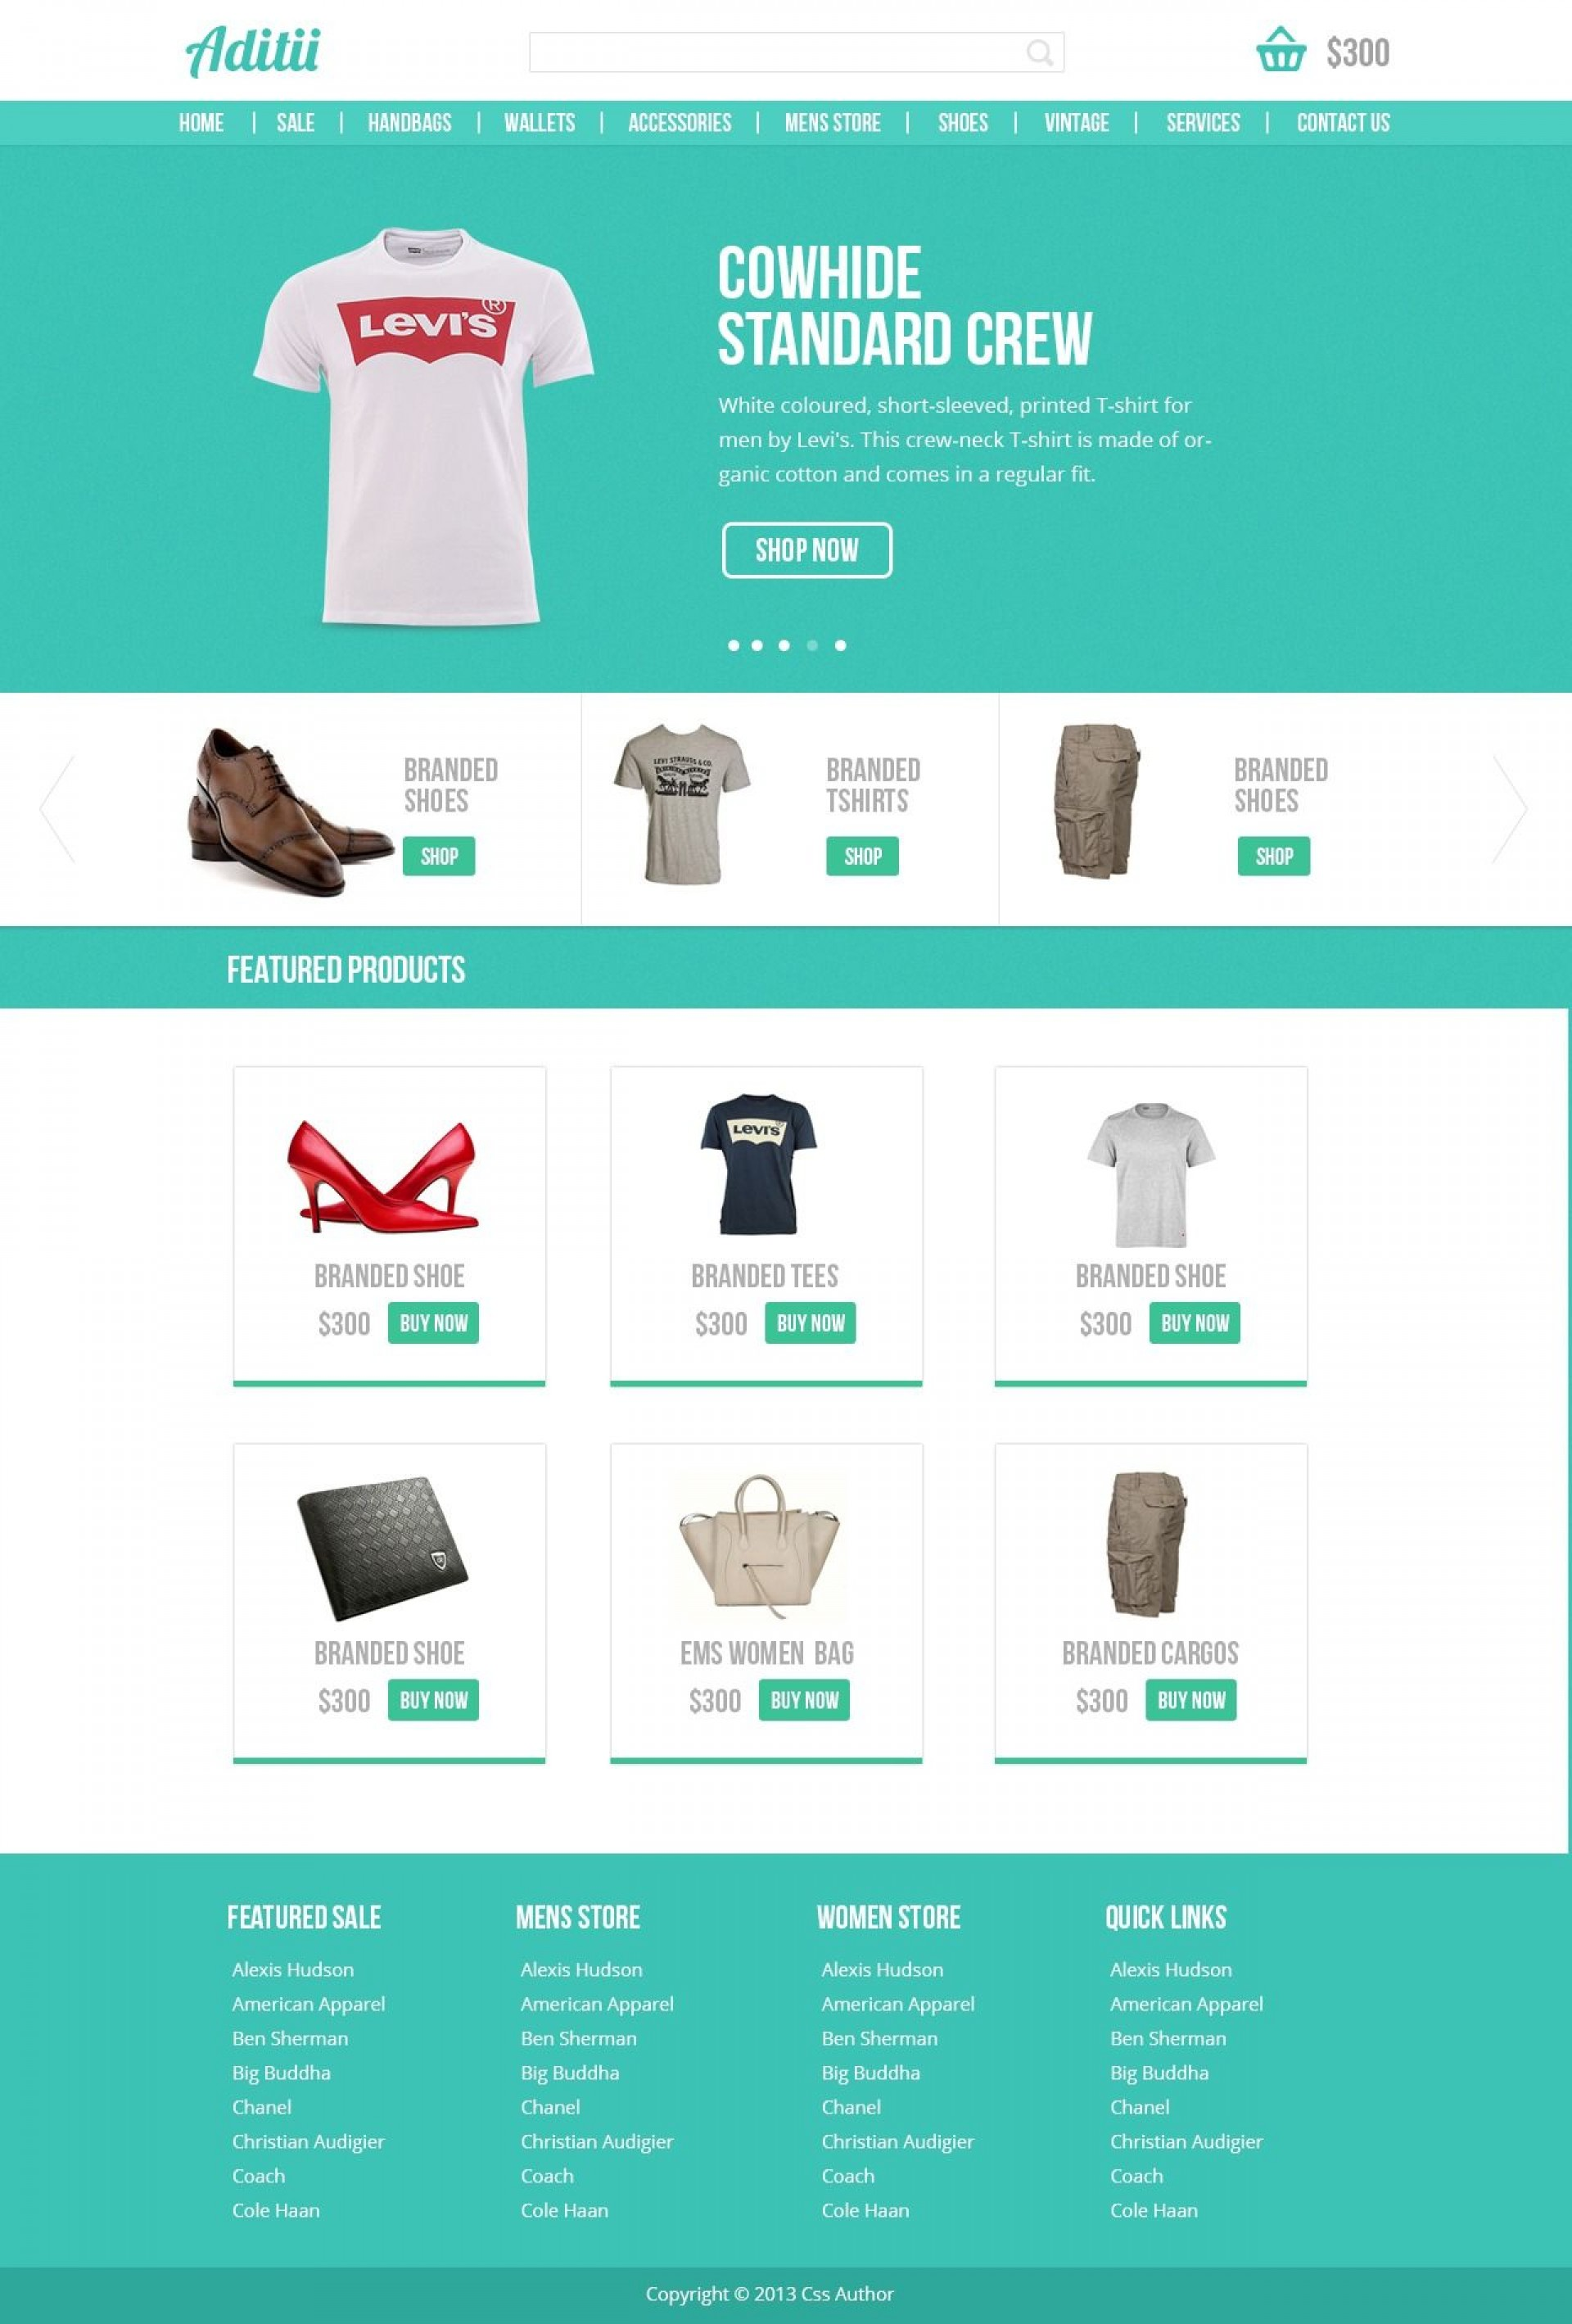 001 Imposing Free E Commerce Website Template High Definition  Ecommerce Html Cs Bootstrap Php1920